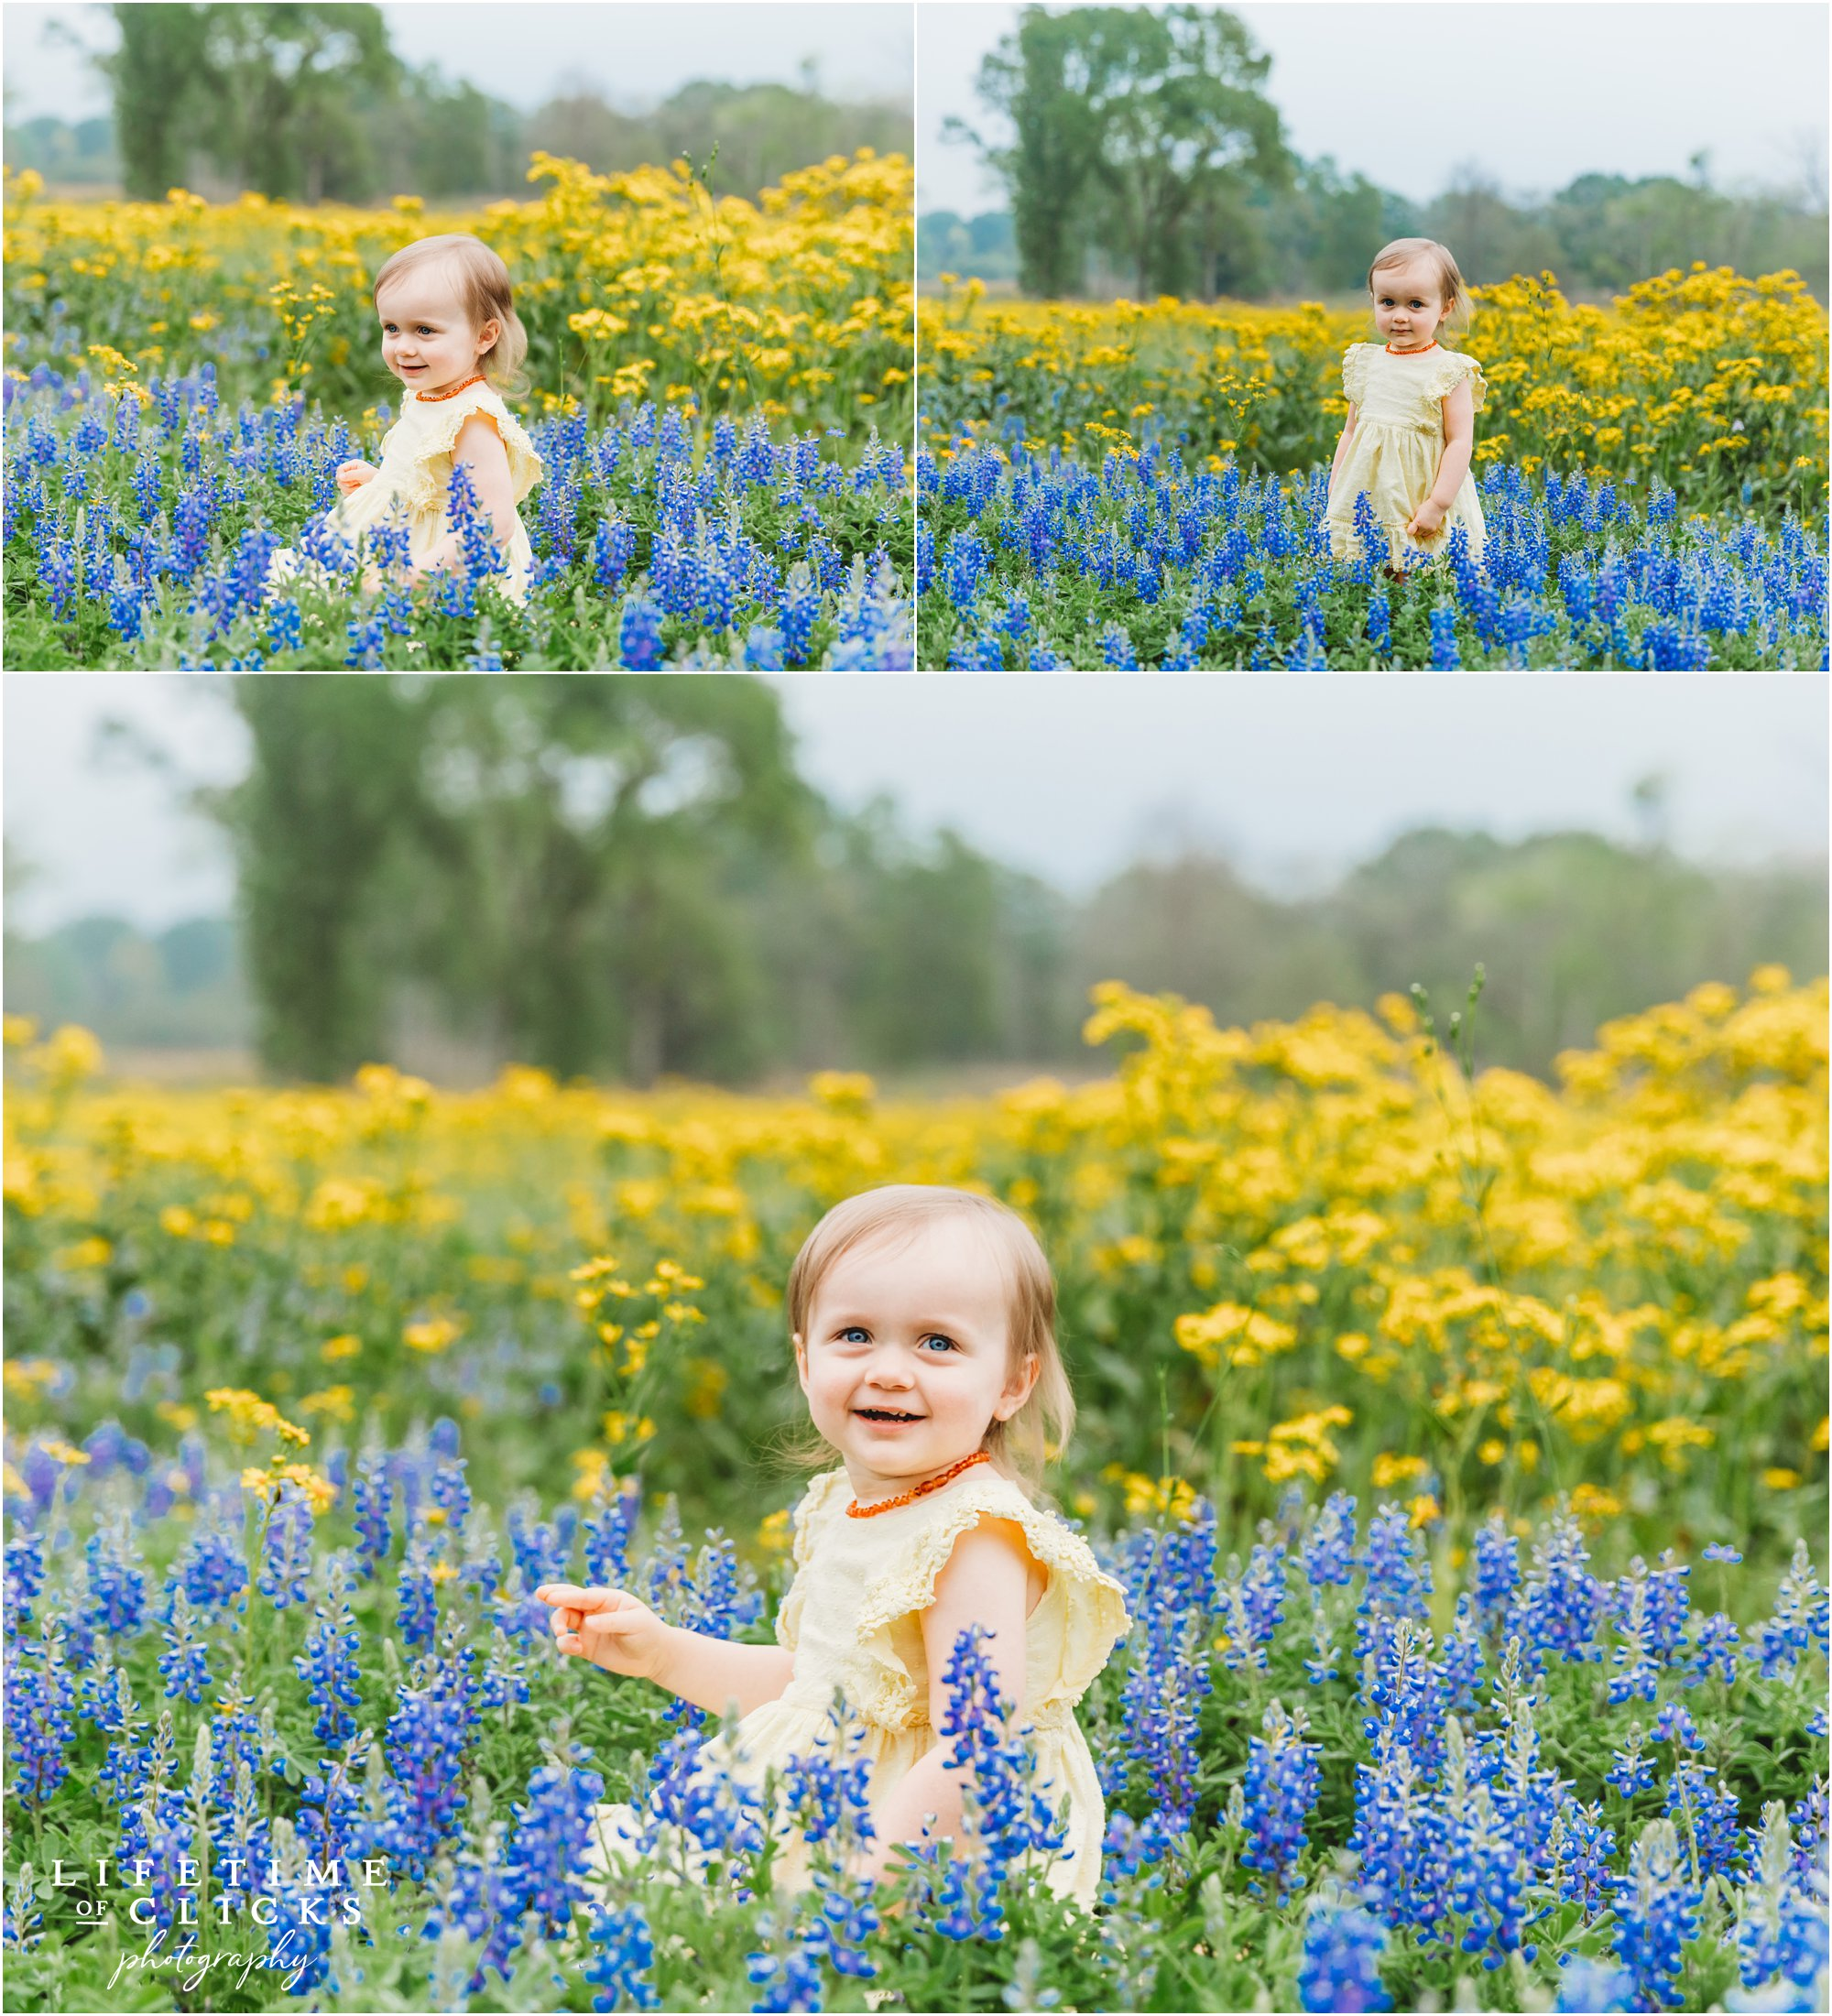 Little girl in Bluebonnets